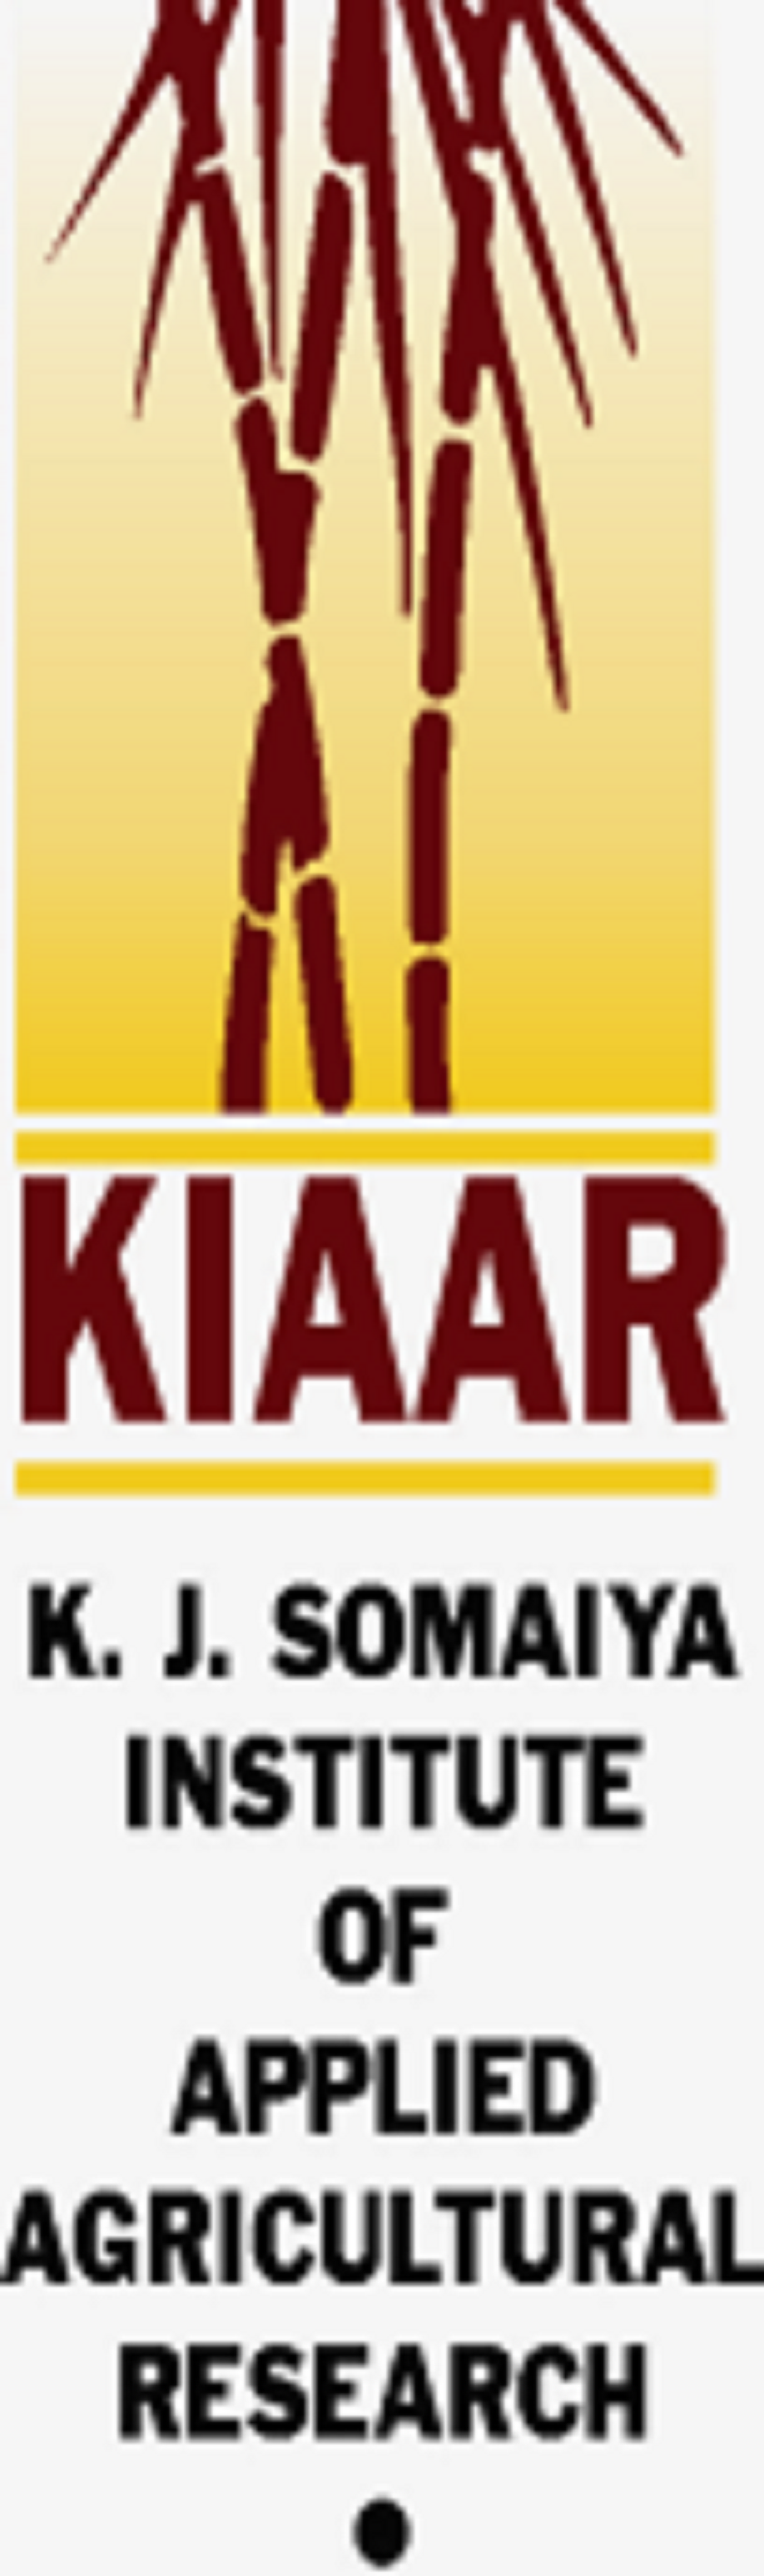 K. J. Somaiya Institute of Applied Agricultural Research